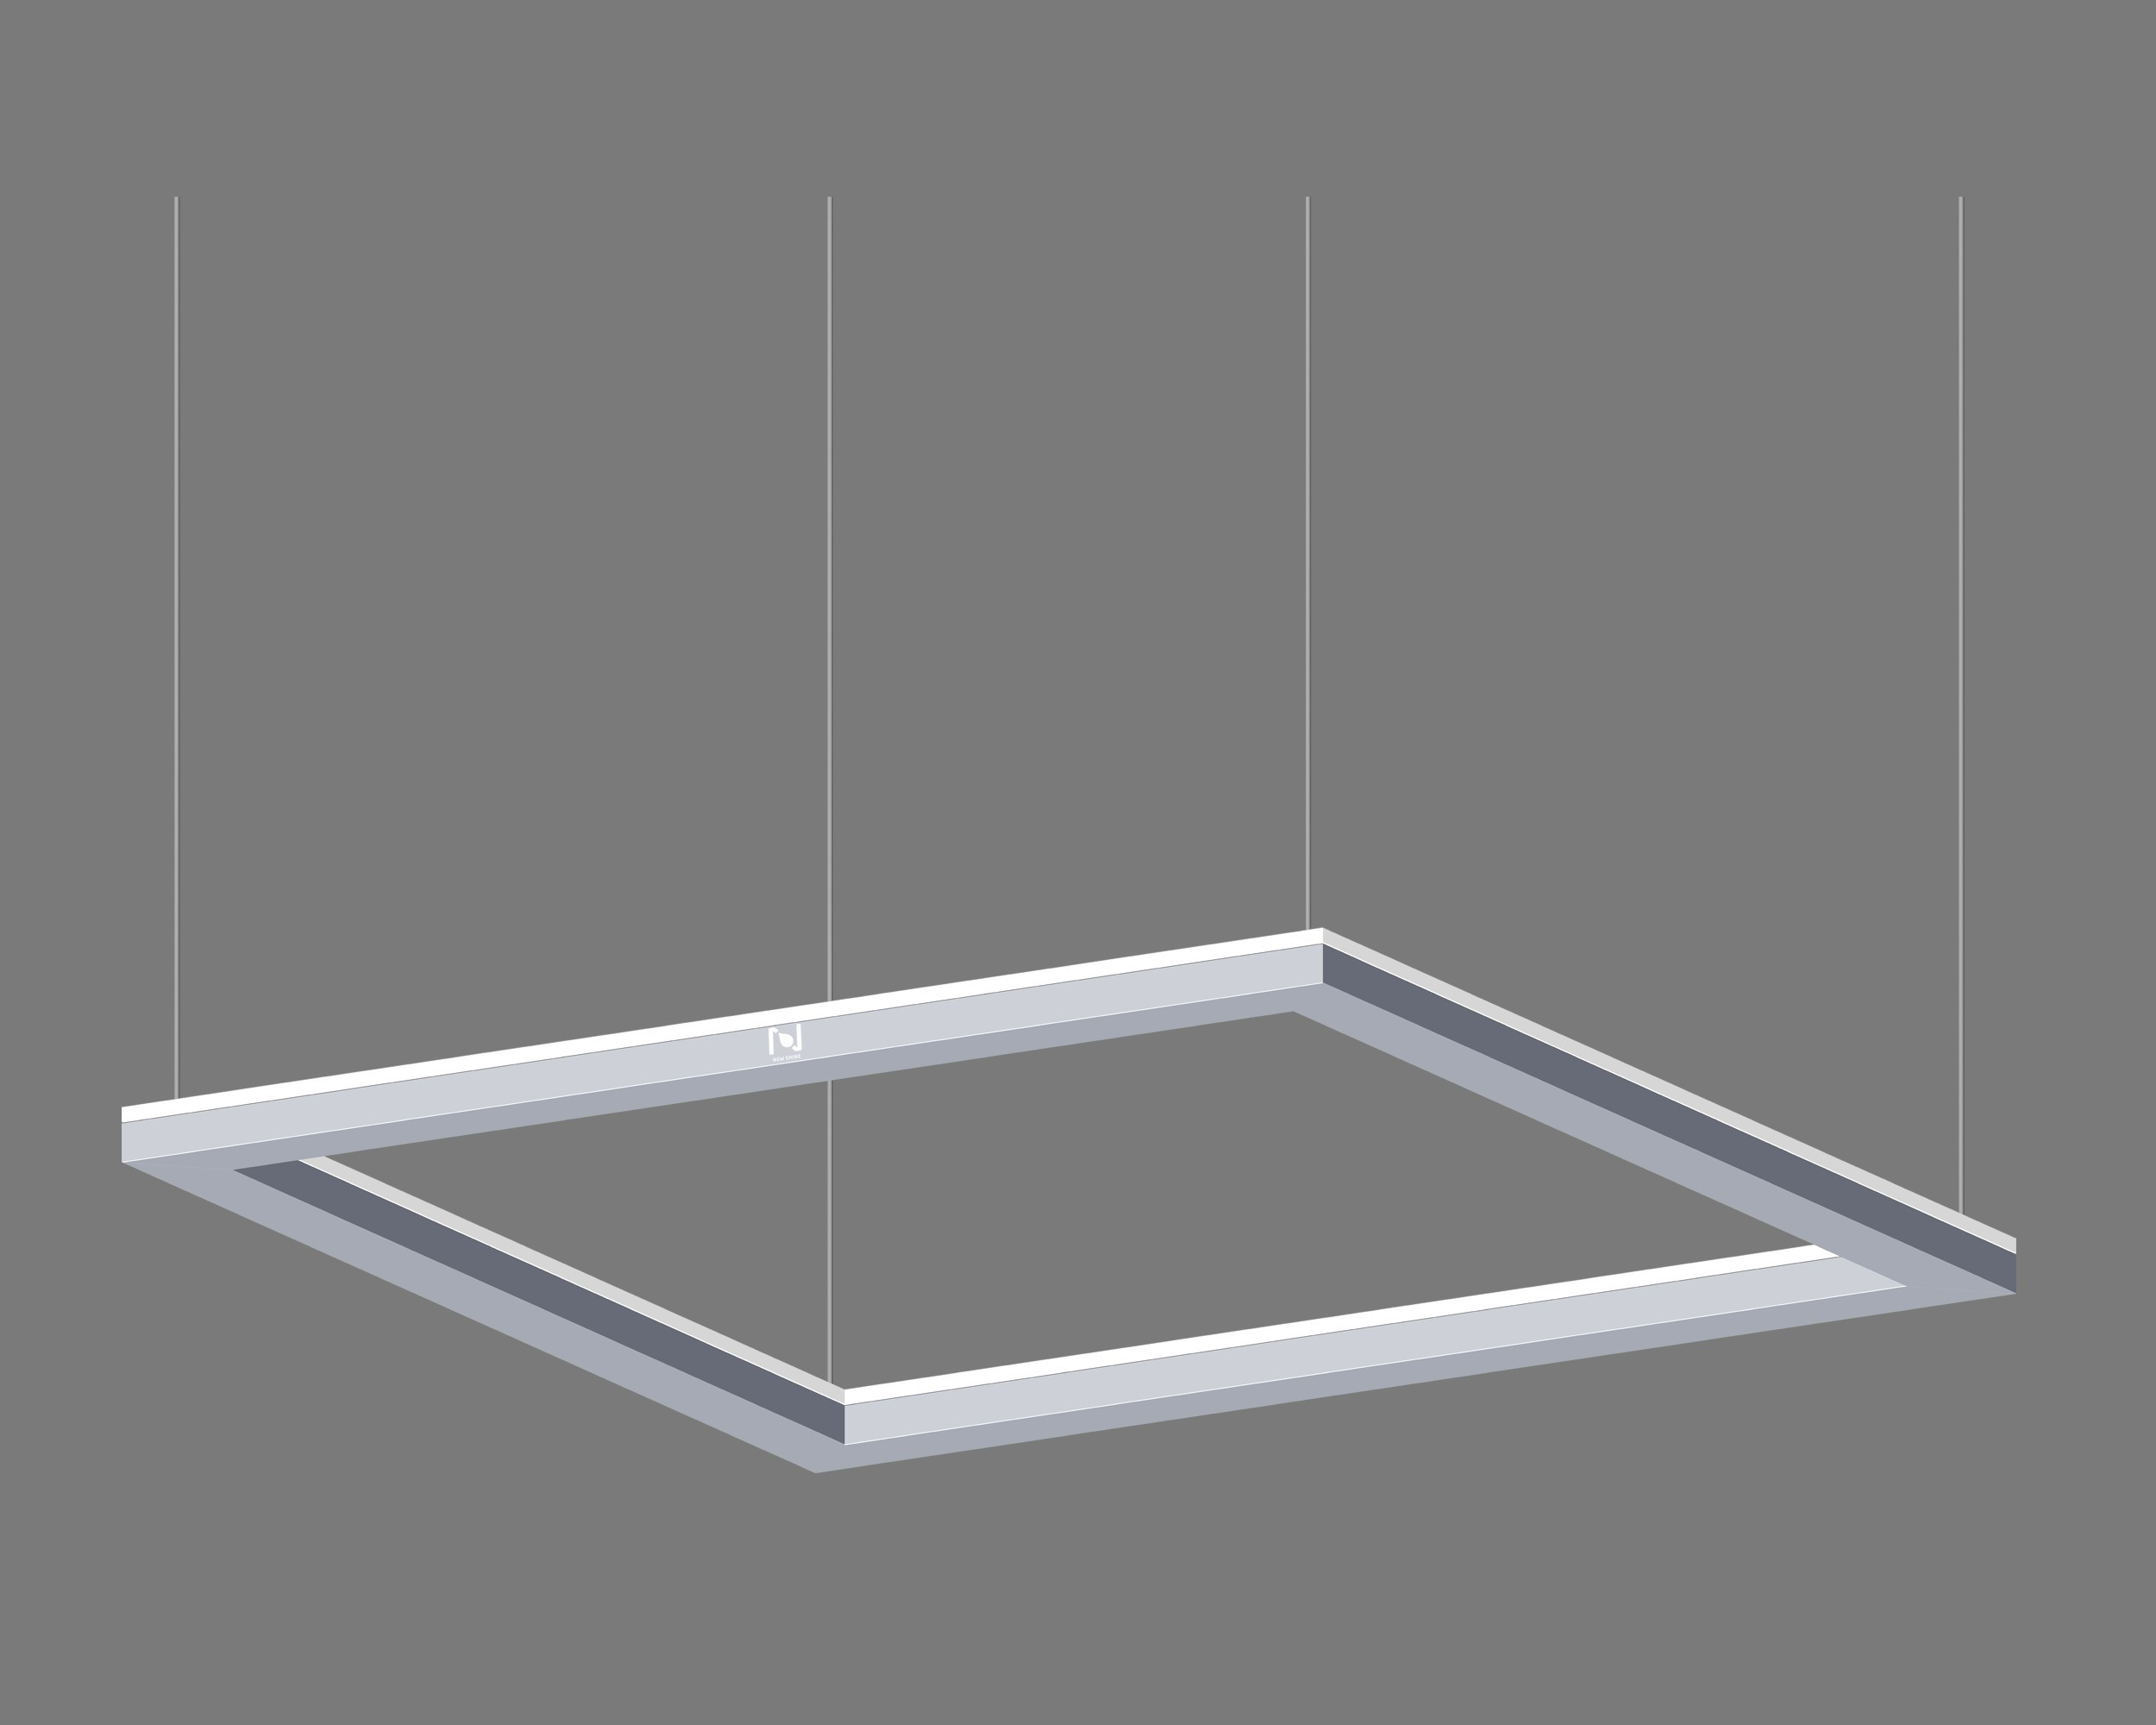 Suspended direct lit square frame light fixture LL0195S-80W-D